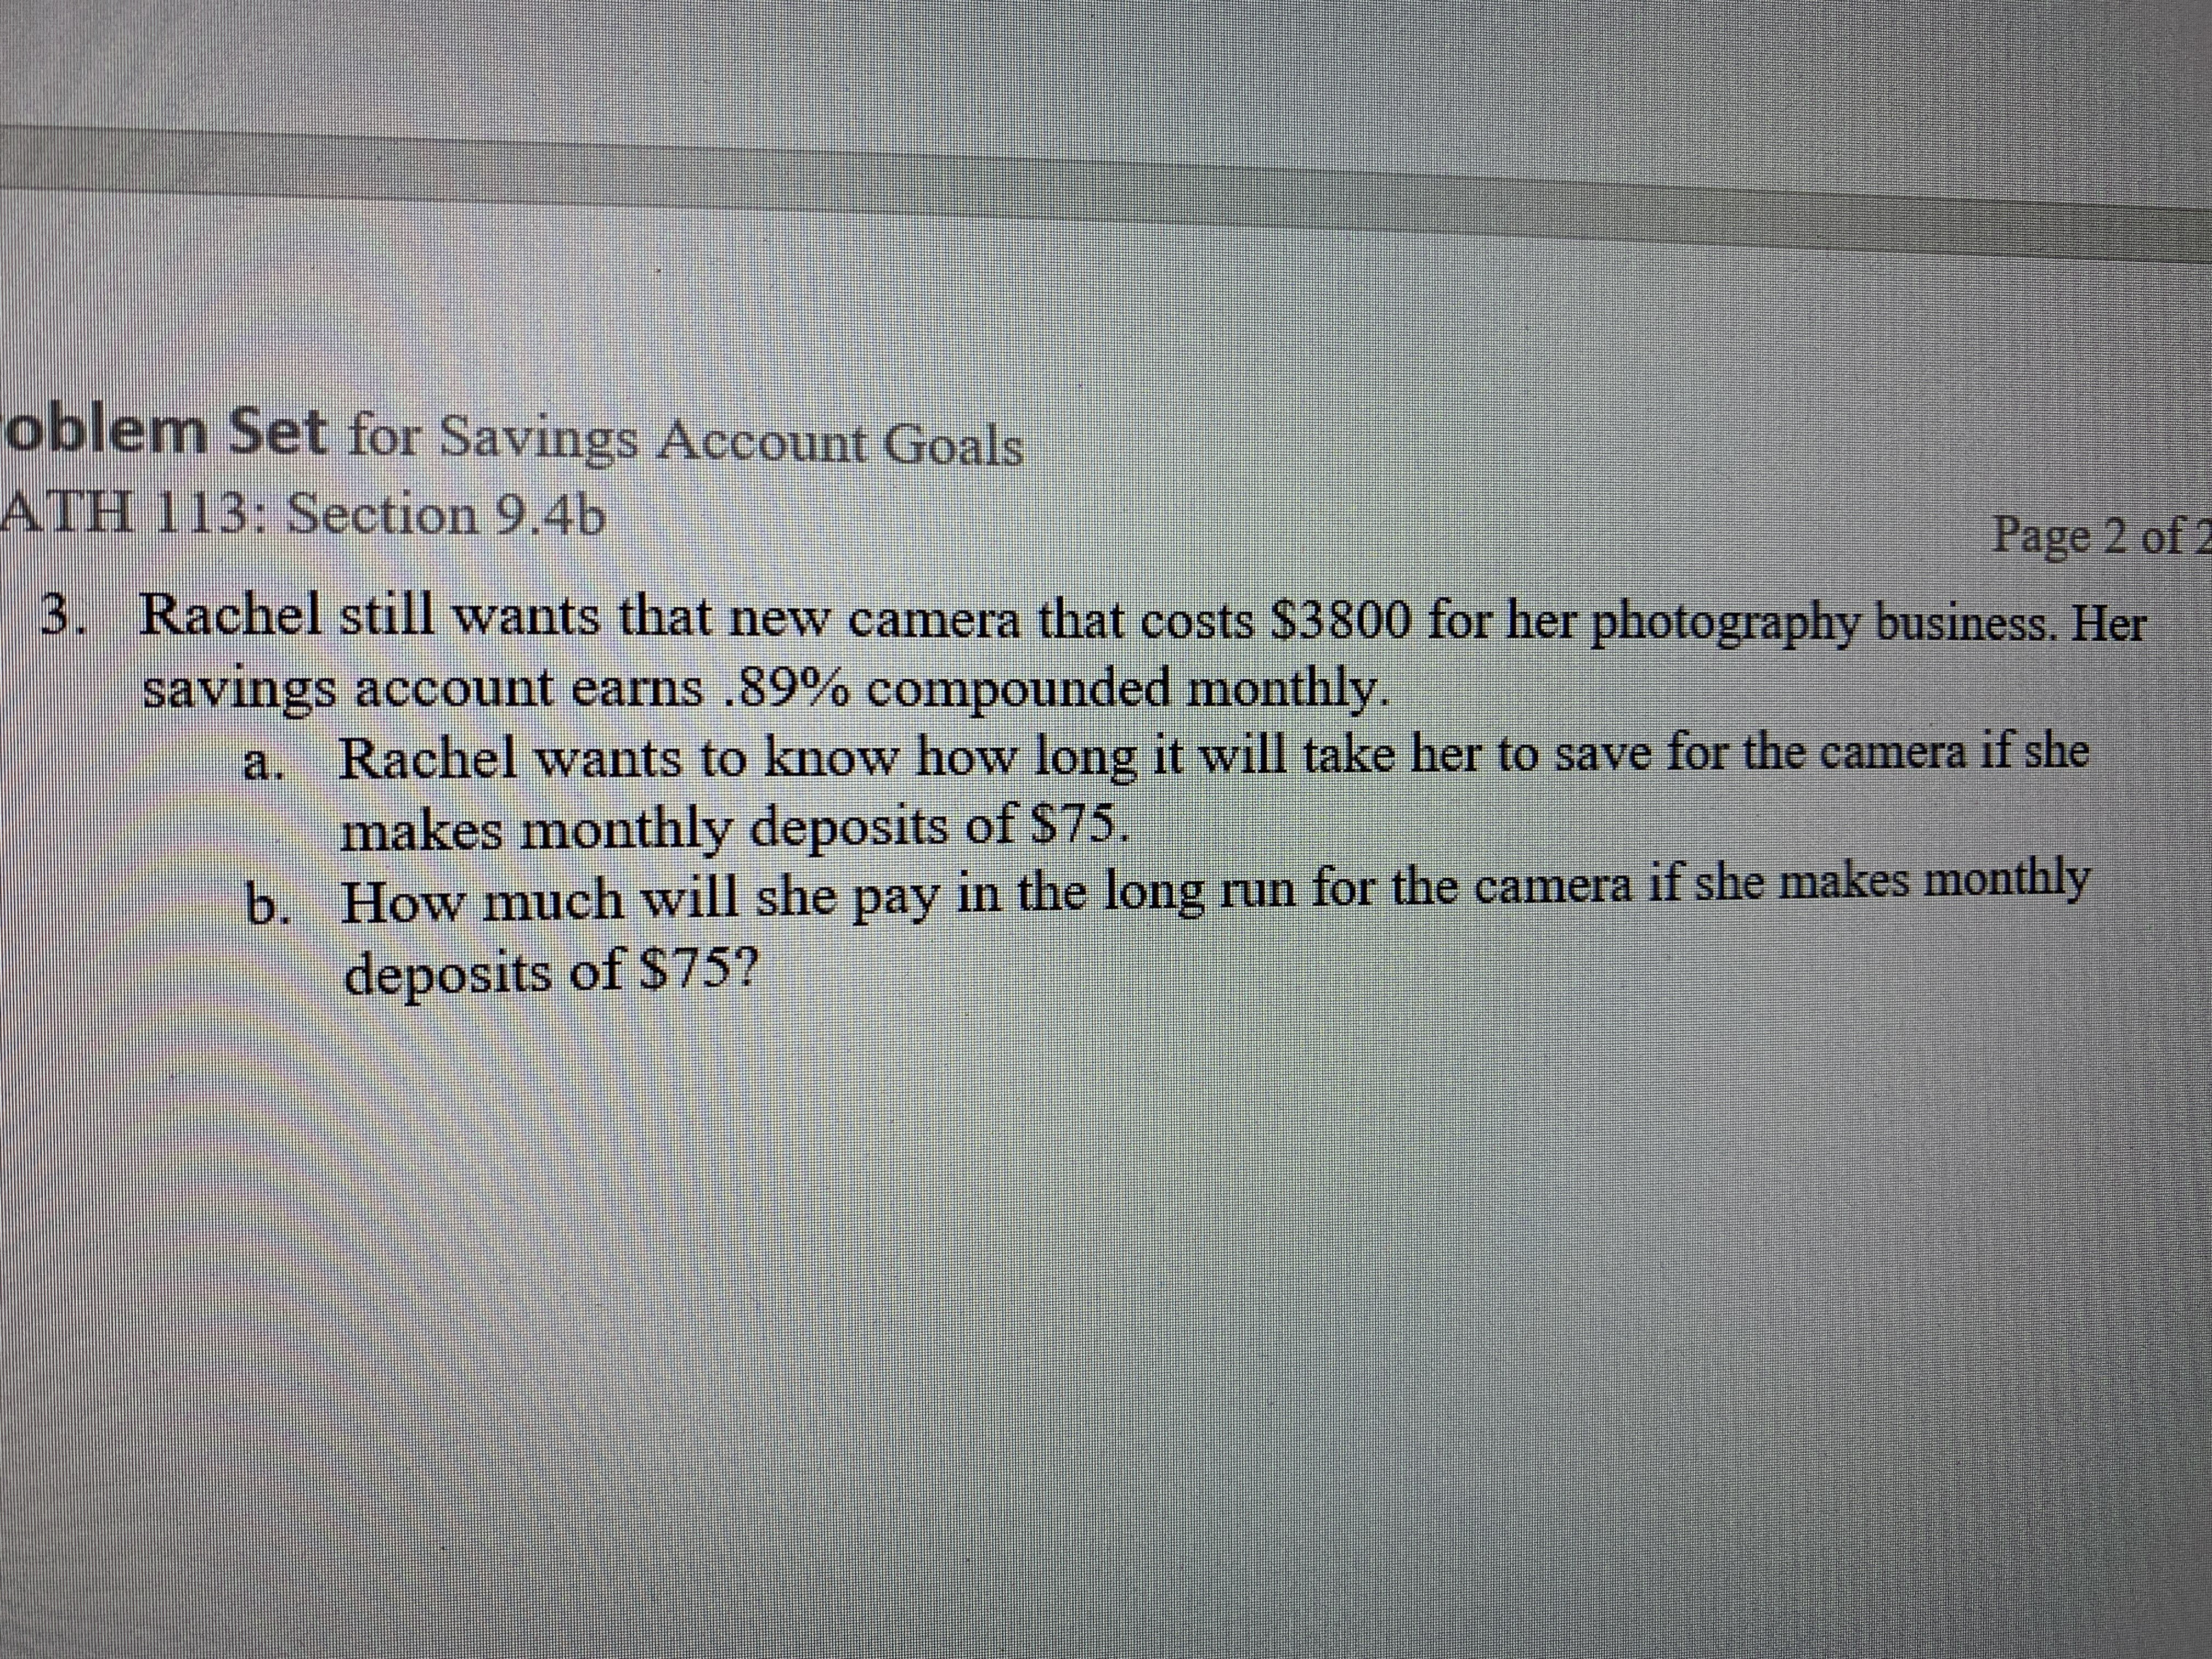 oblem Set for Savings Account Goals ATH 113: Section 9.4b Page 2 of 2 3. Rachel still wants that new camera that costs $3800 for her photography business. Her savings account earns .89% compounded monthly a. Rachel wants to know how long it will take her to save for the camera if she makes monthly deposits of $75. b. How much will she pay in the long run for the camera if she makes monthly deposits of $75?